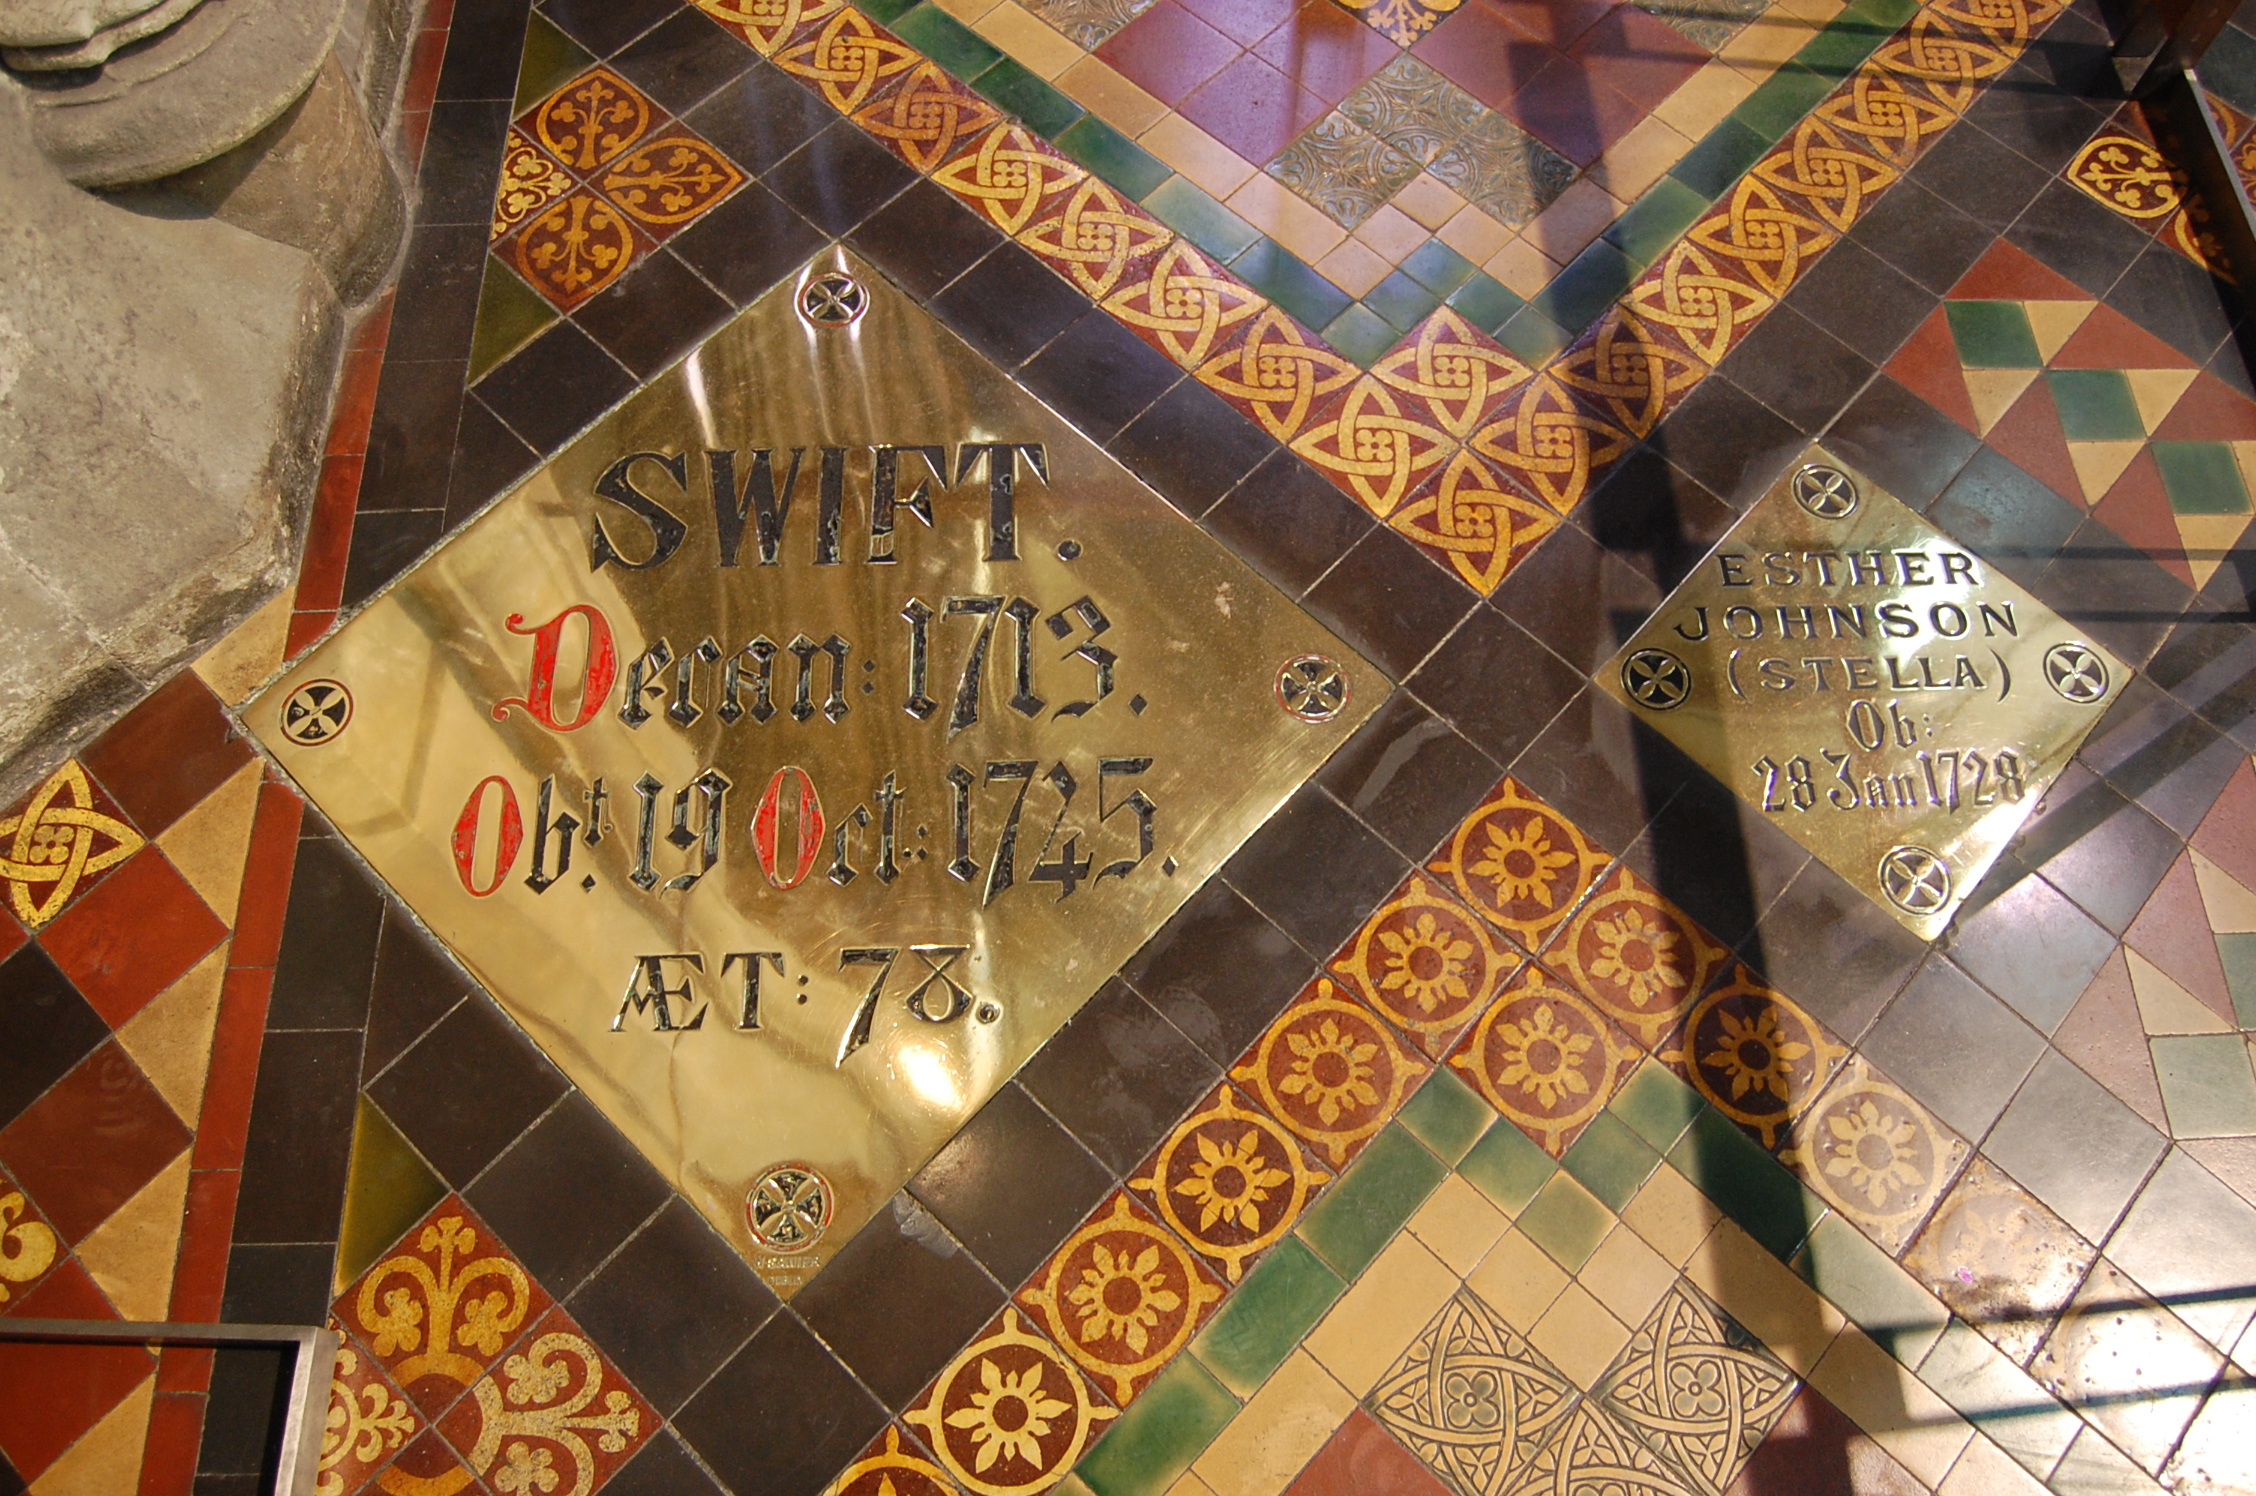 Jonathan Swift St Patrick's Cathedral Dublin poet grave